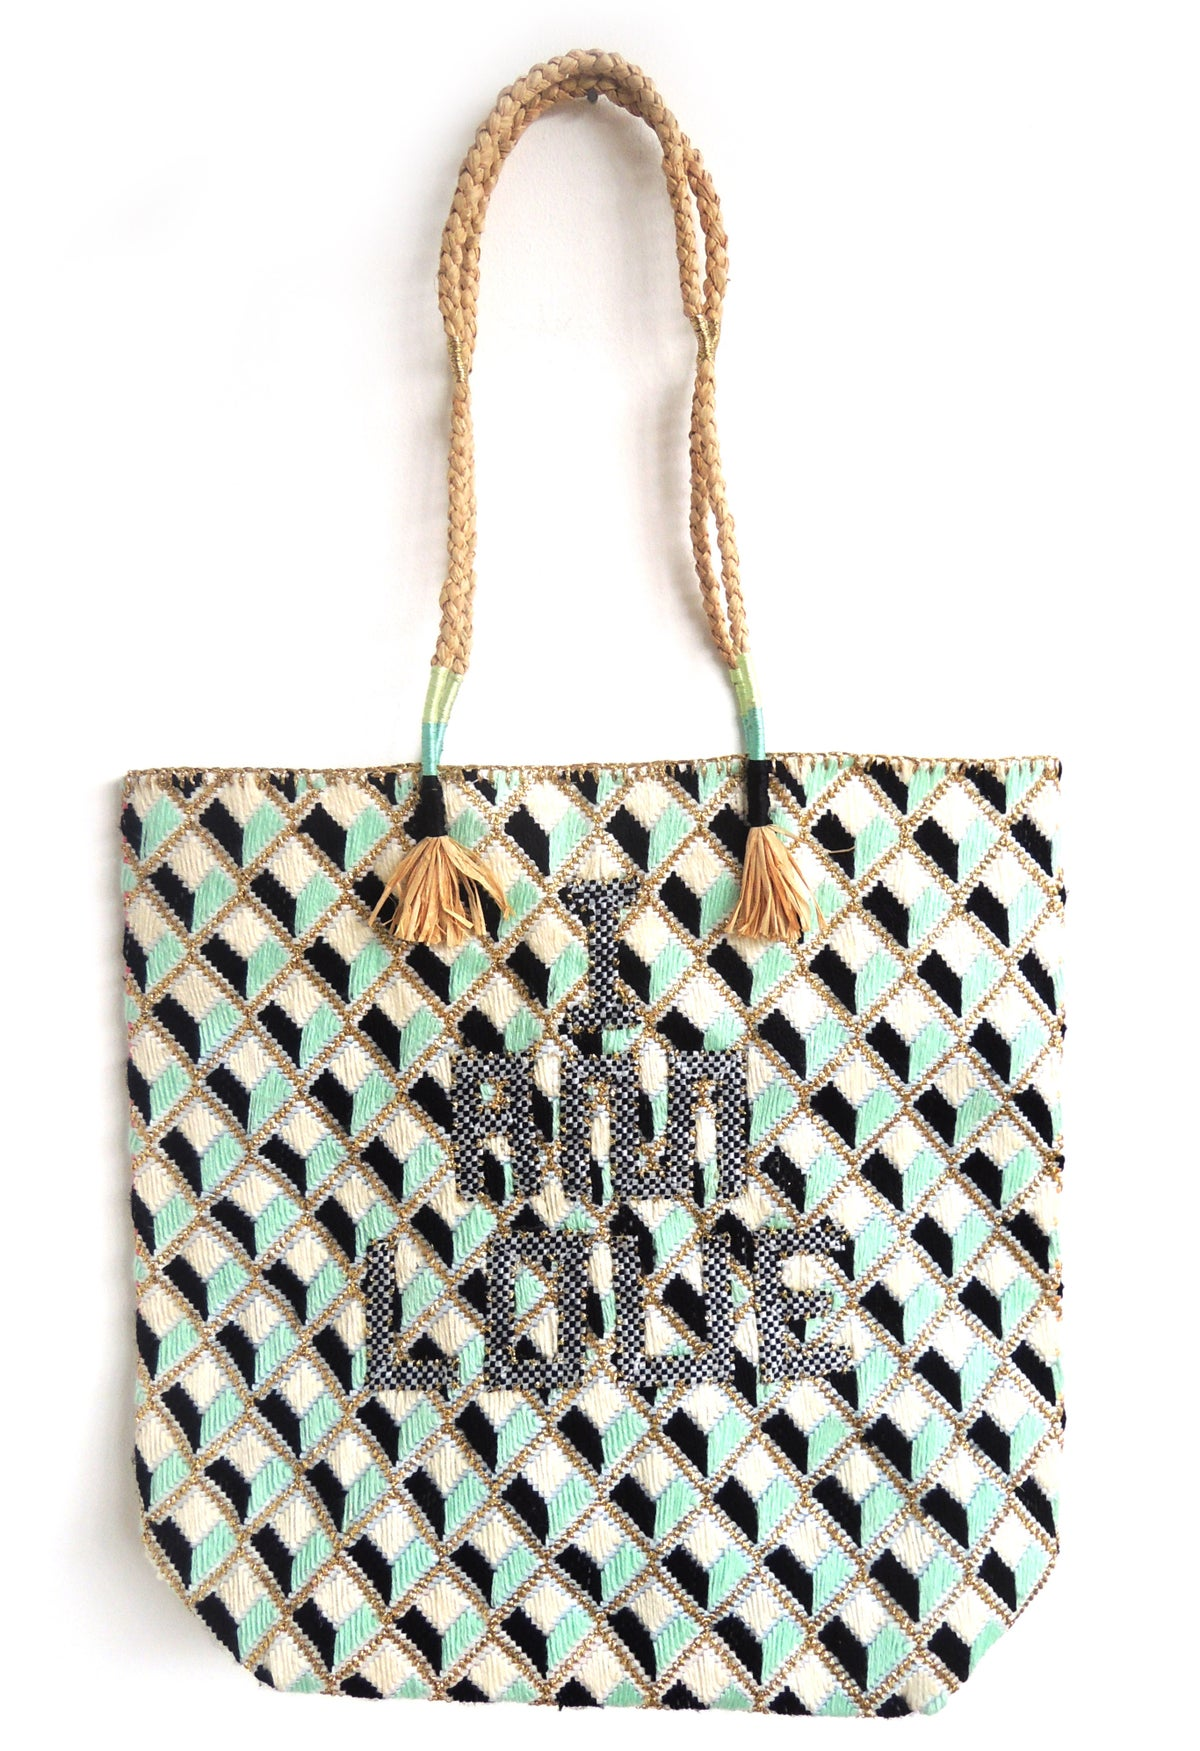 Recycled Charity Bag Sadie Frost x Frances Dove x Enshalla.